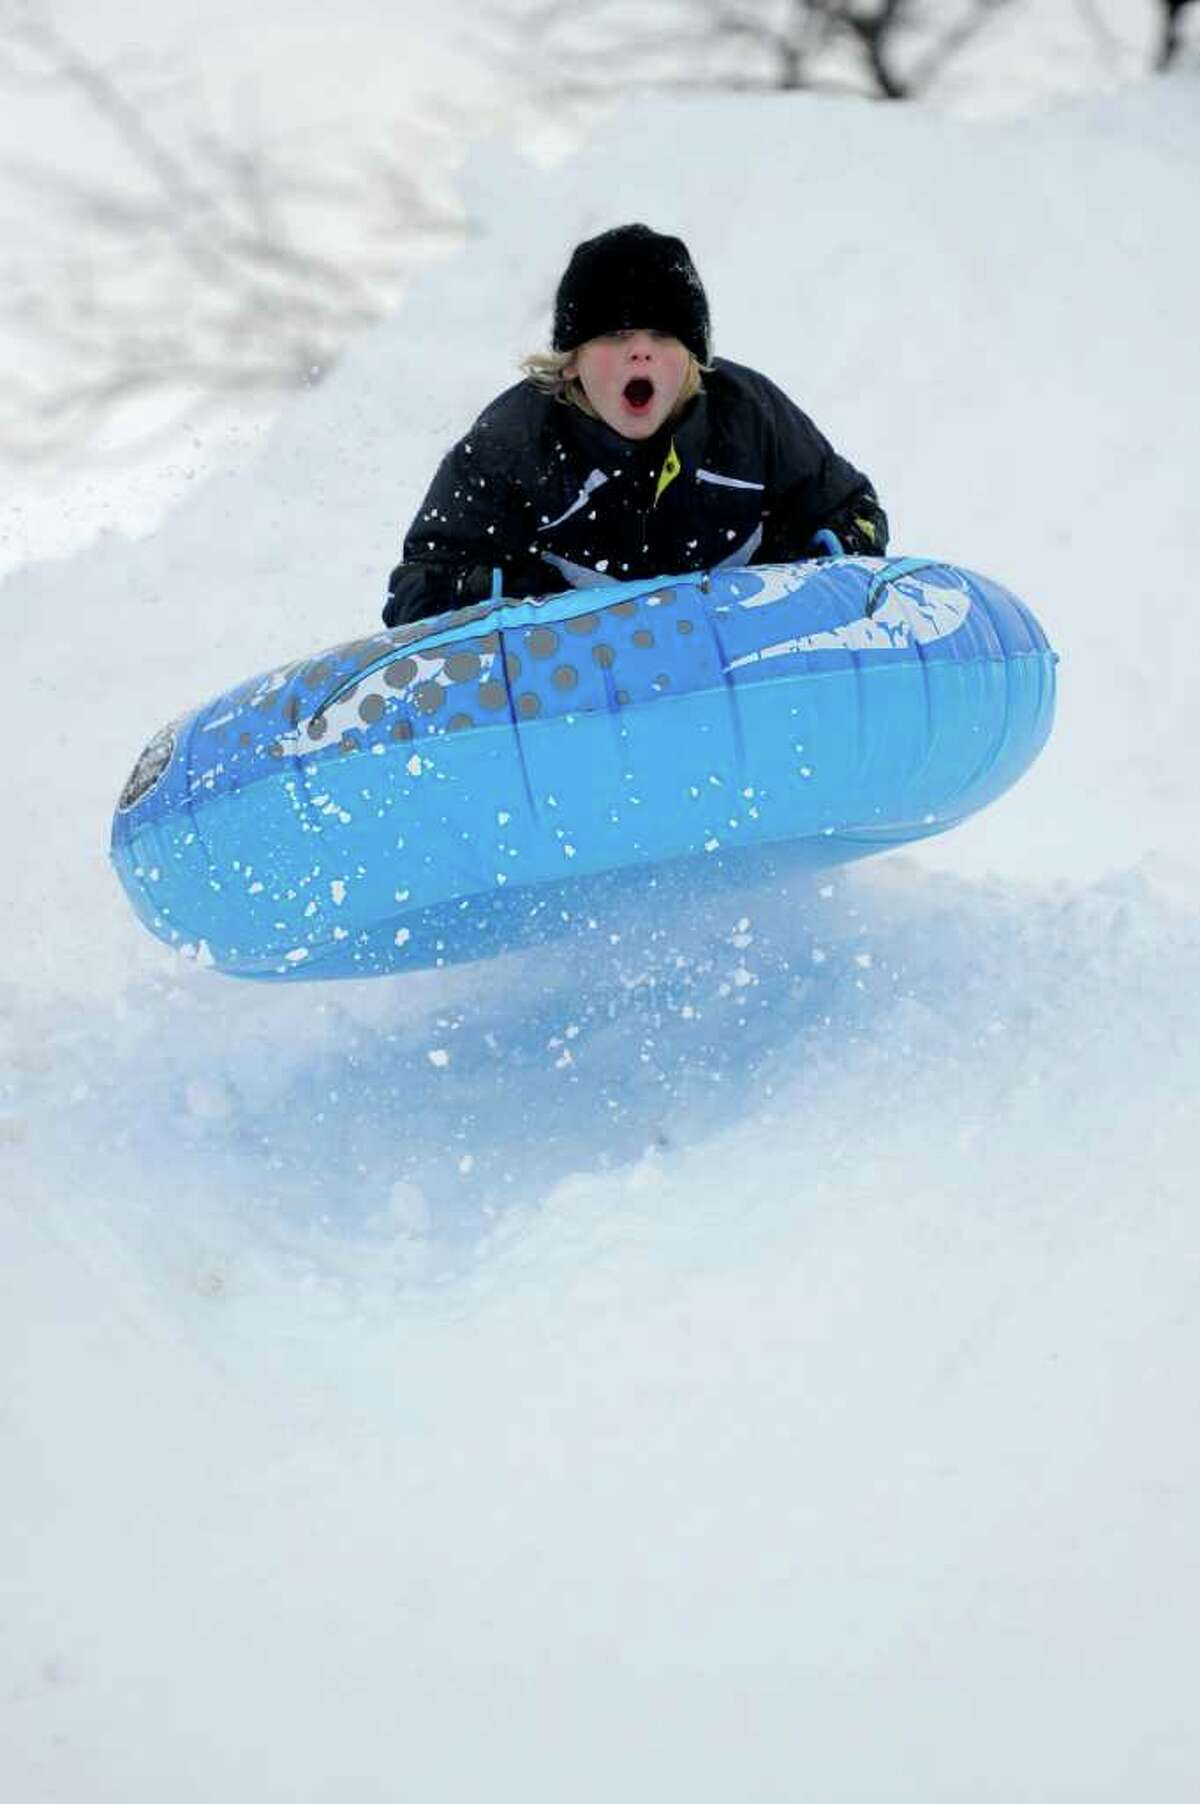 Christopher Puchala, 11, catches some air as he sleds off a giant mound of snow created by plows in the parking lot behind Greensfarms Elementary School in Westport on Wednesday, January 12, 2011.